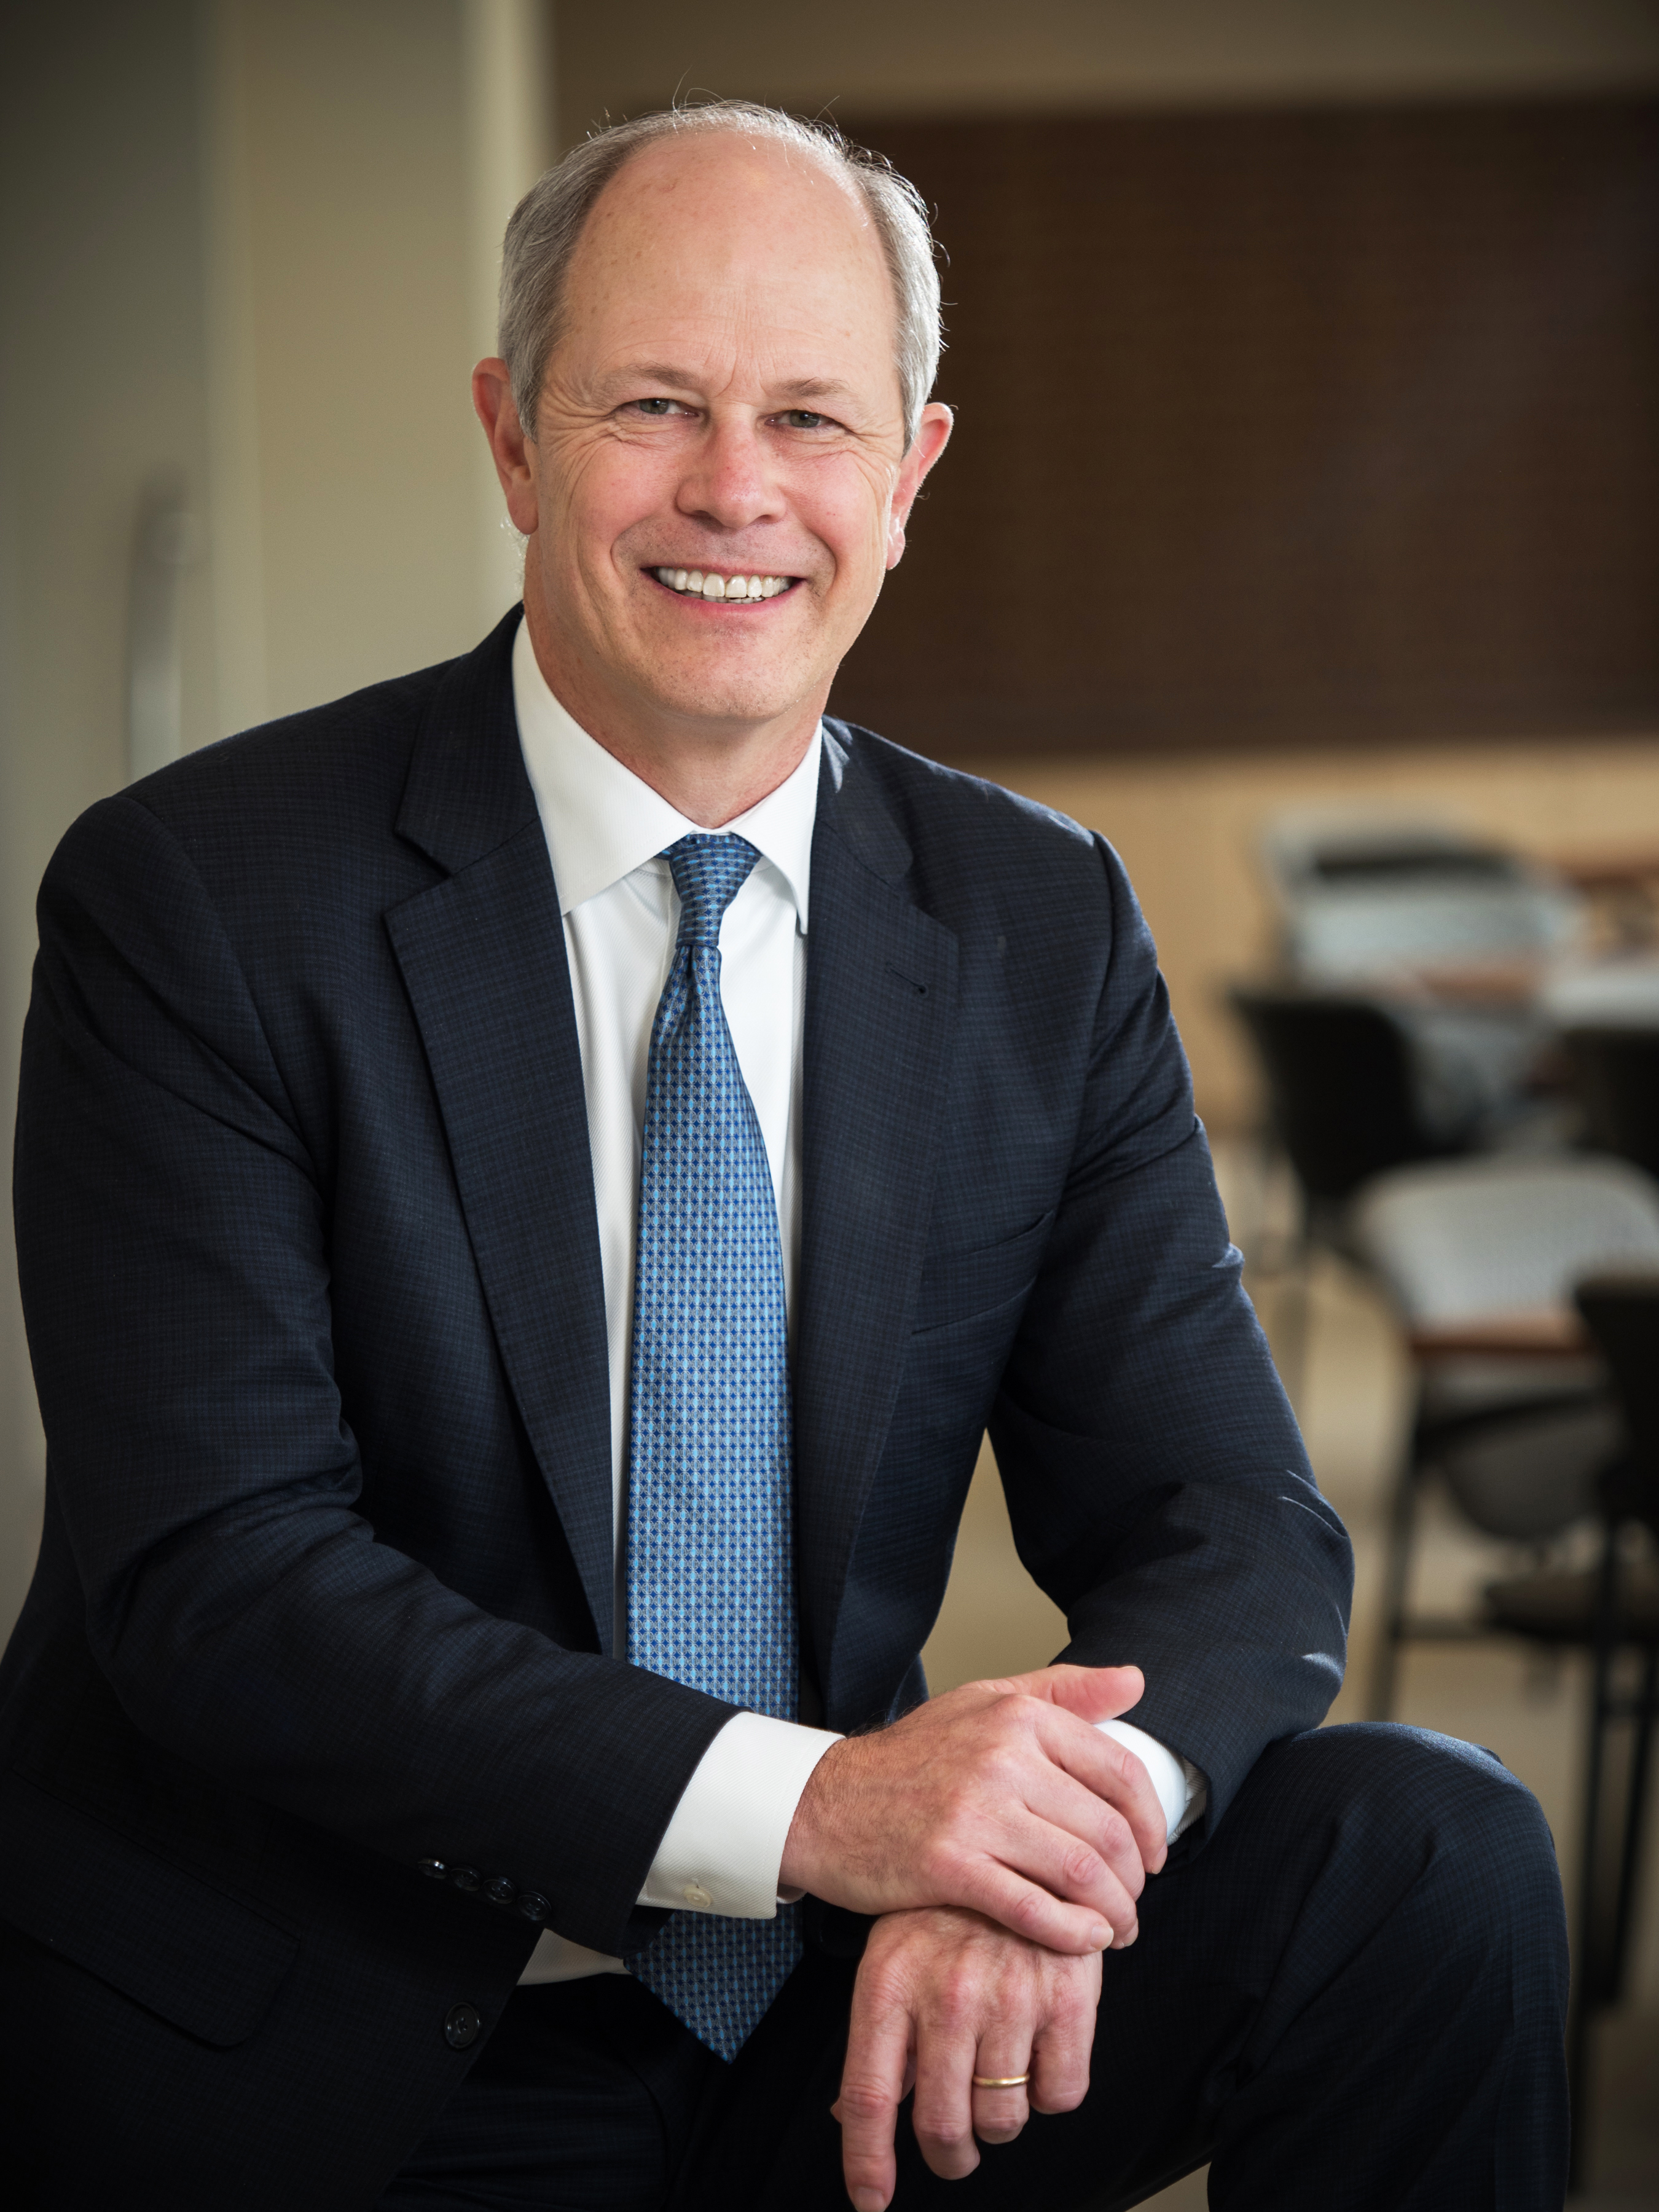 Kevin M. Phillips, ManTech Chairman, CEO and President